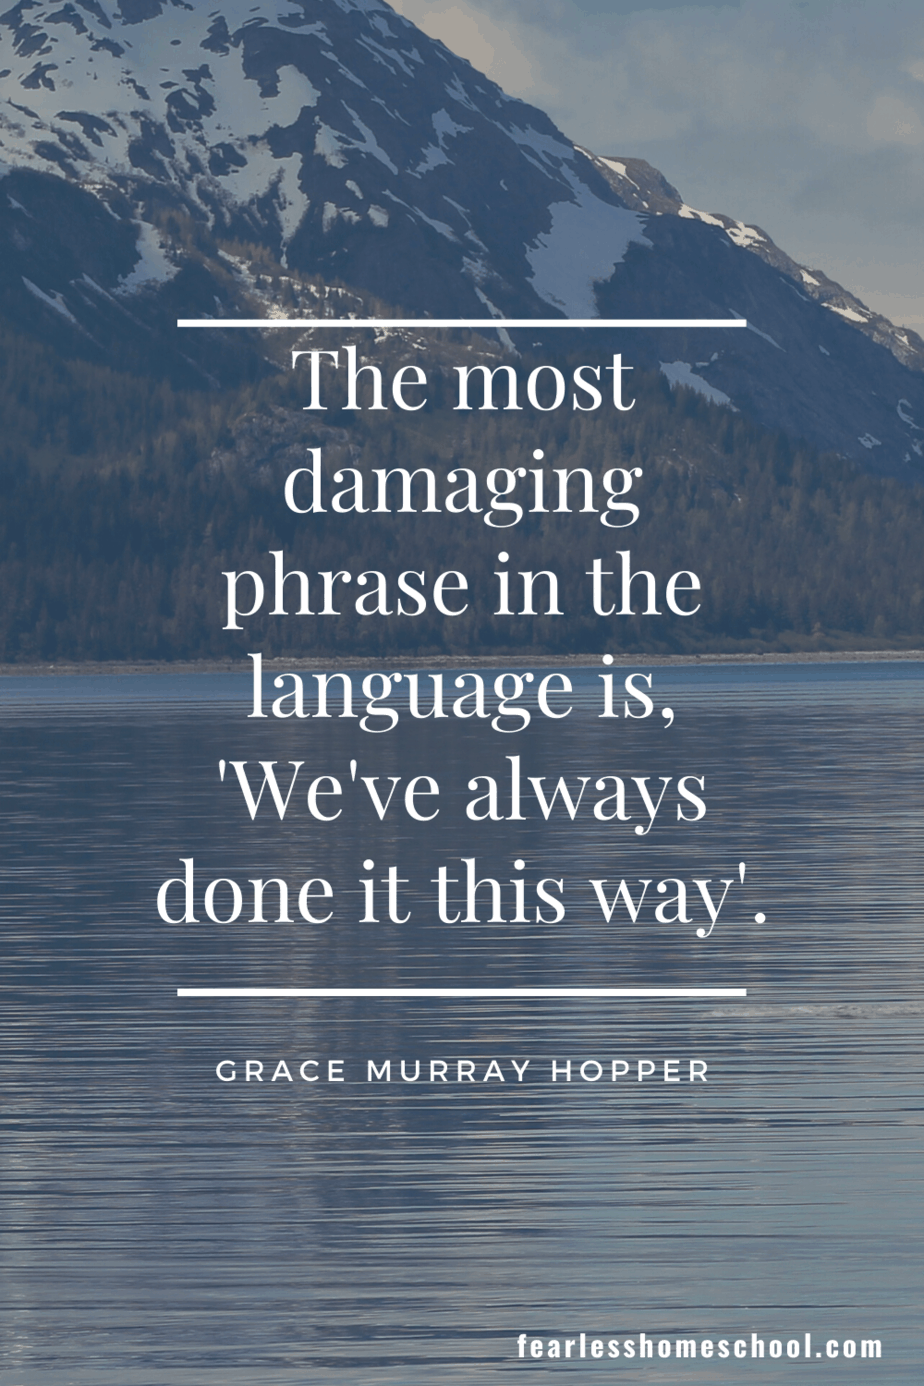 The most damaging phrase in the language is, 'We've always done it this way'. Grace Murray Hopper homeschooling quote